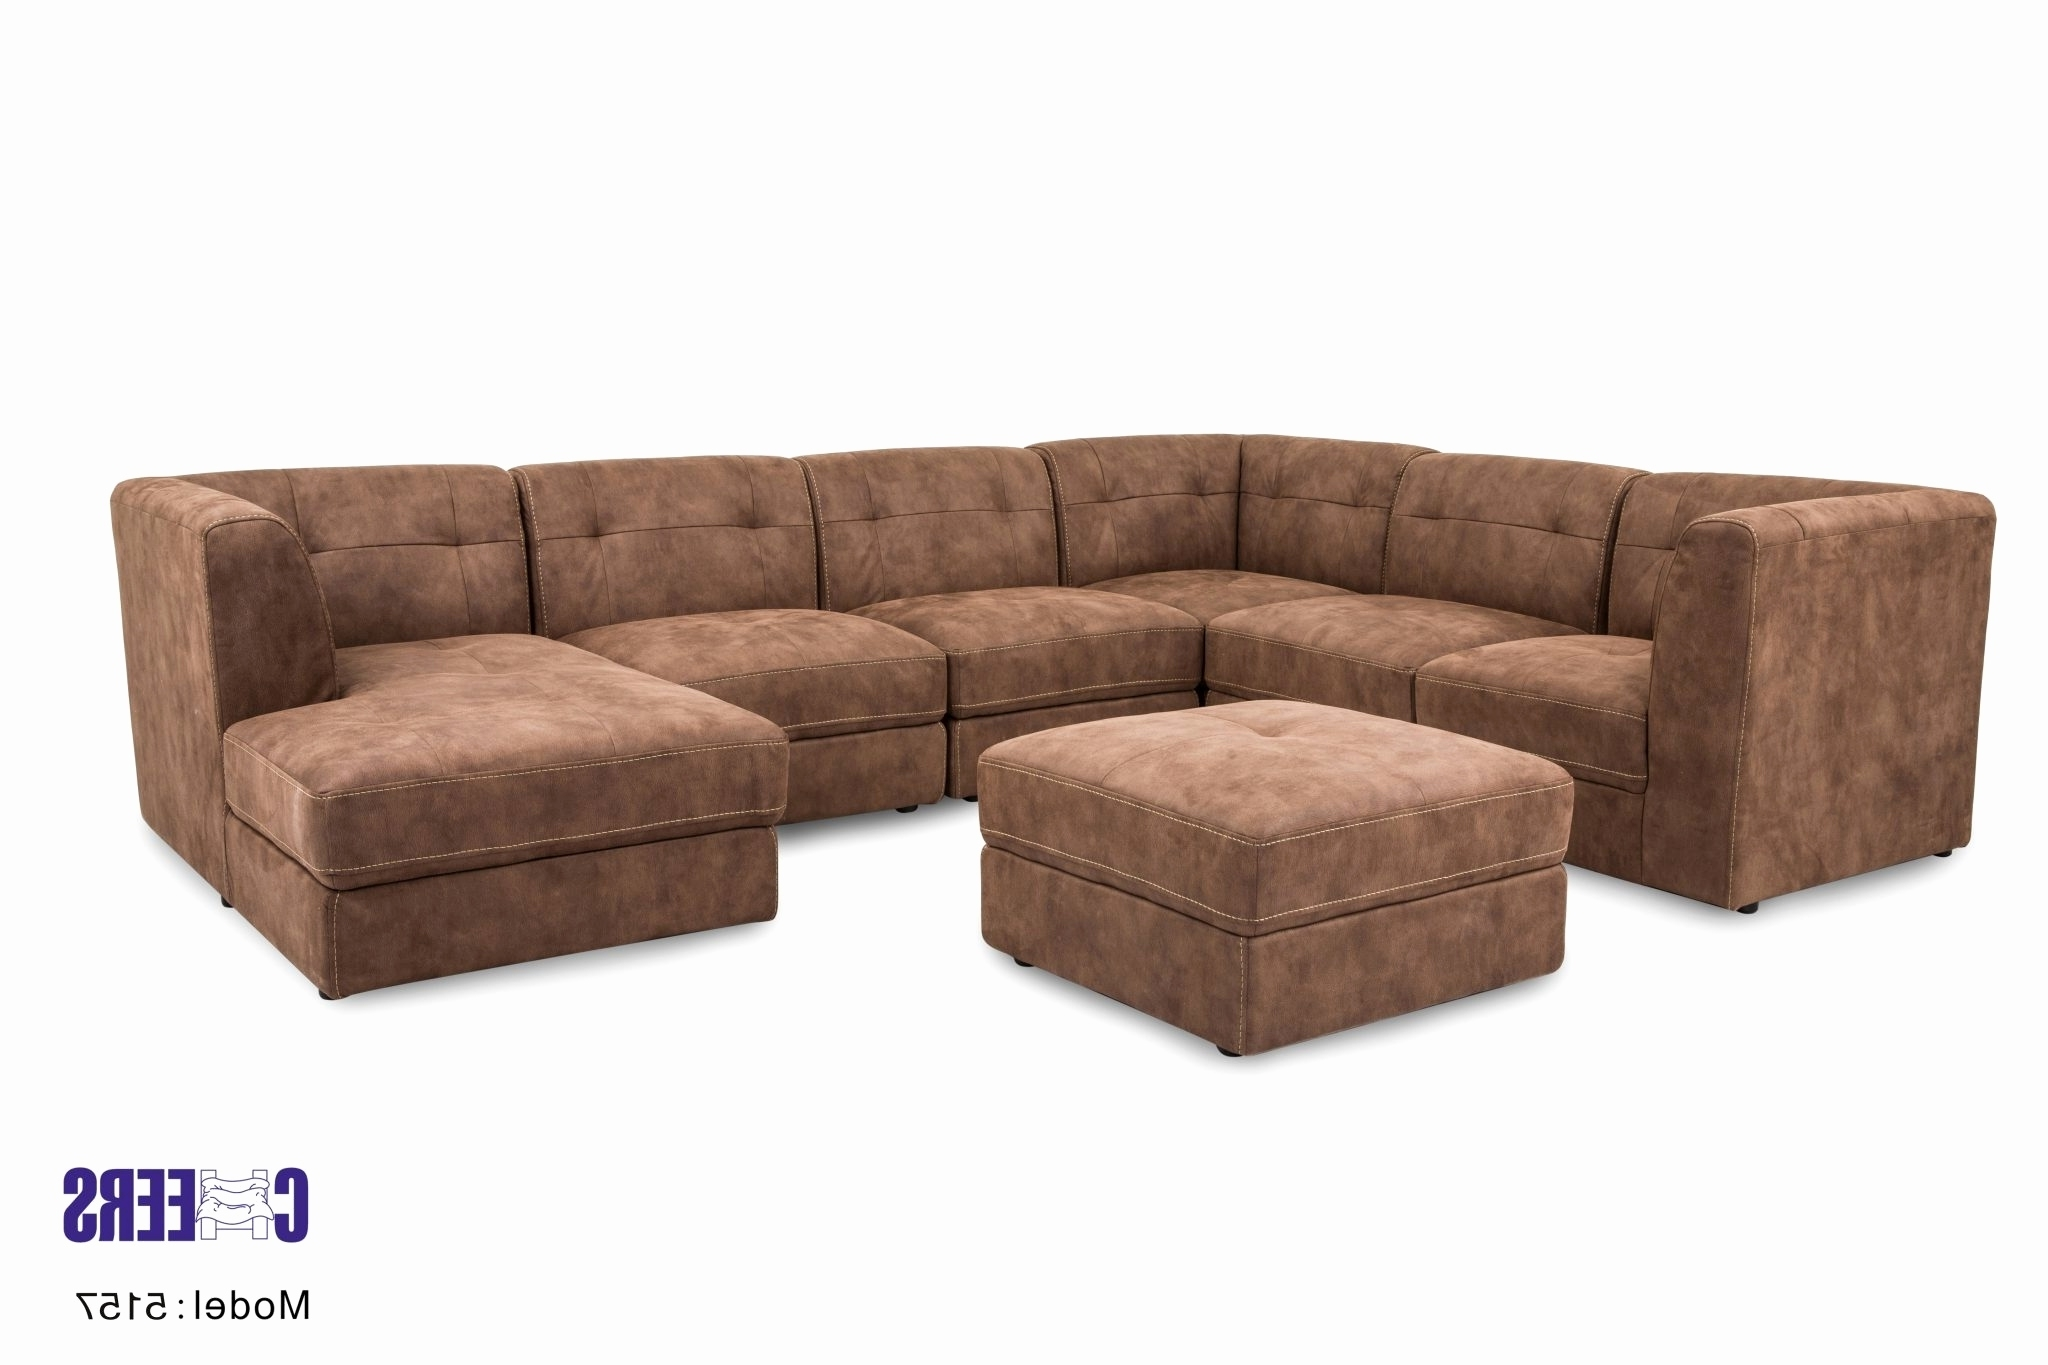 Favorite Luxury 6 Piece Sectional Sofa 2018 – Couches Ideas In Sam Levitz Sectional Sofas (View 5 of 20)